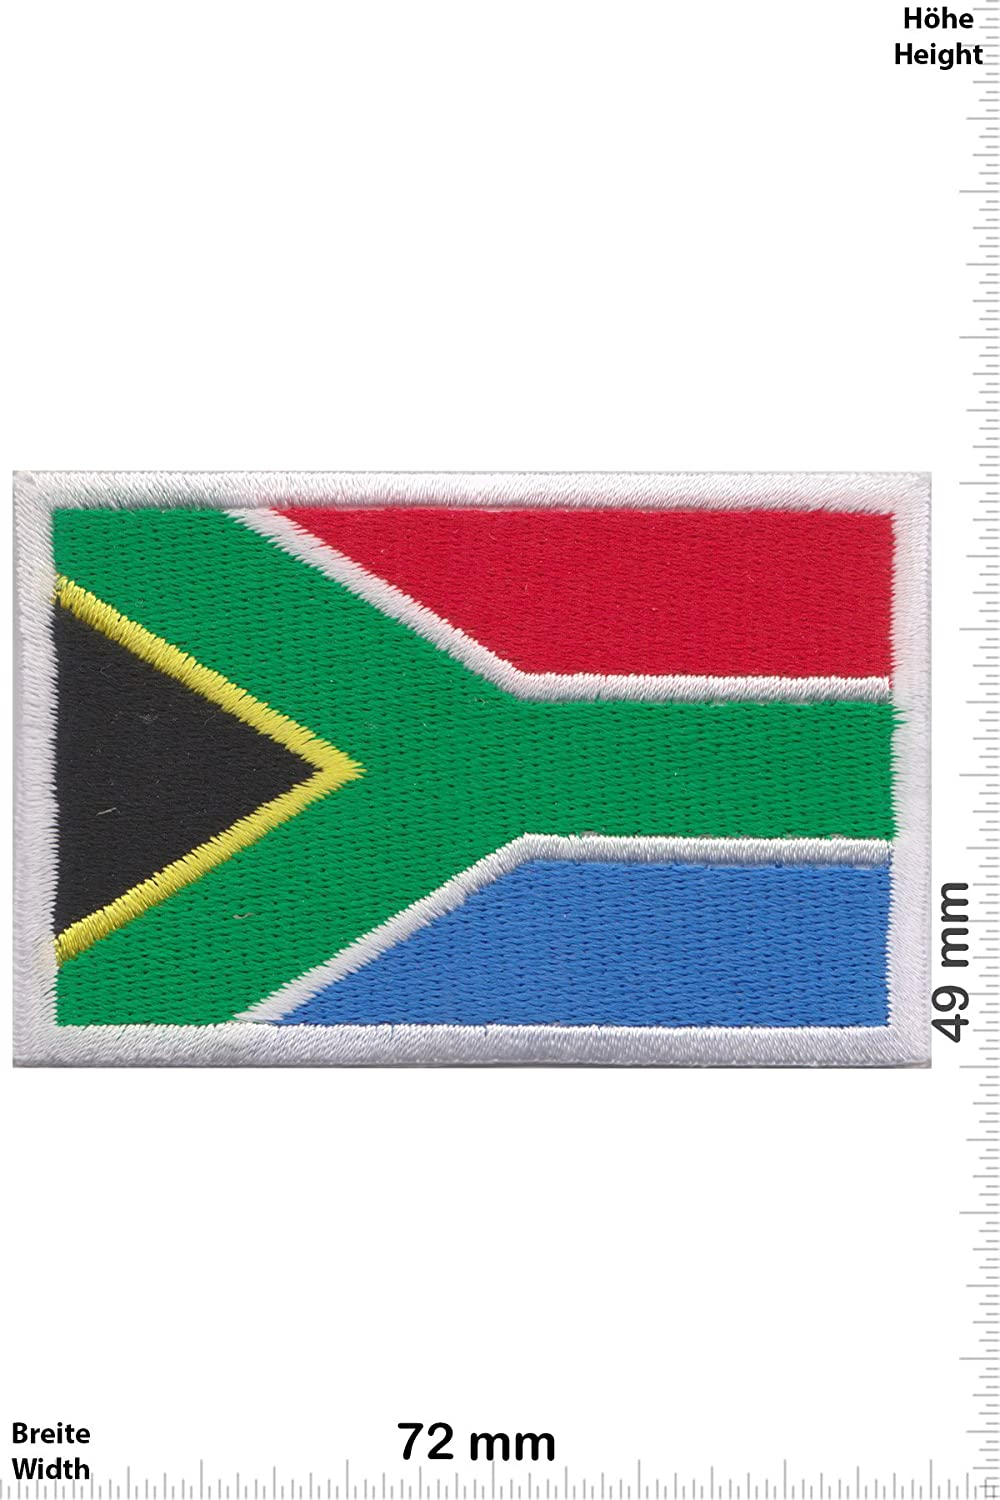 Patch - Südafrika - Flagge - South Africa - Länder Patch - Patches ...